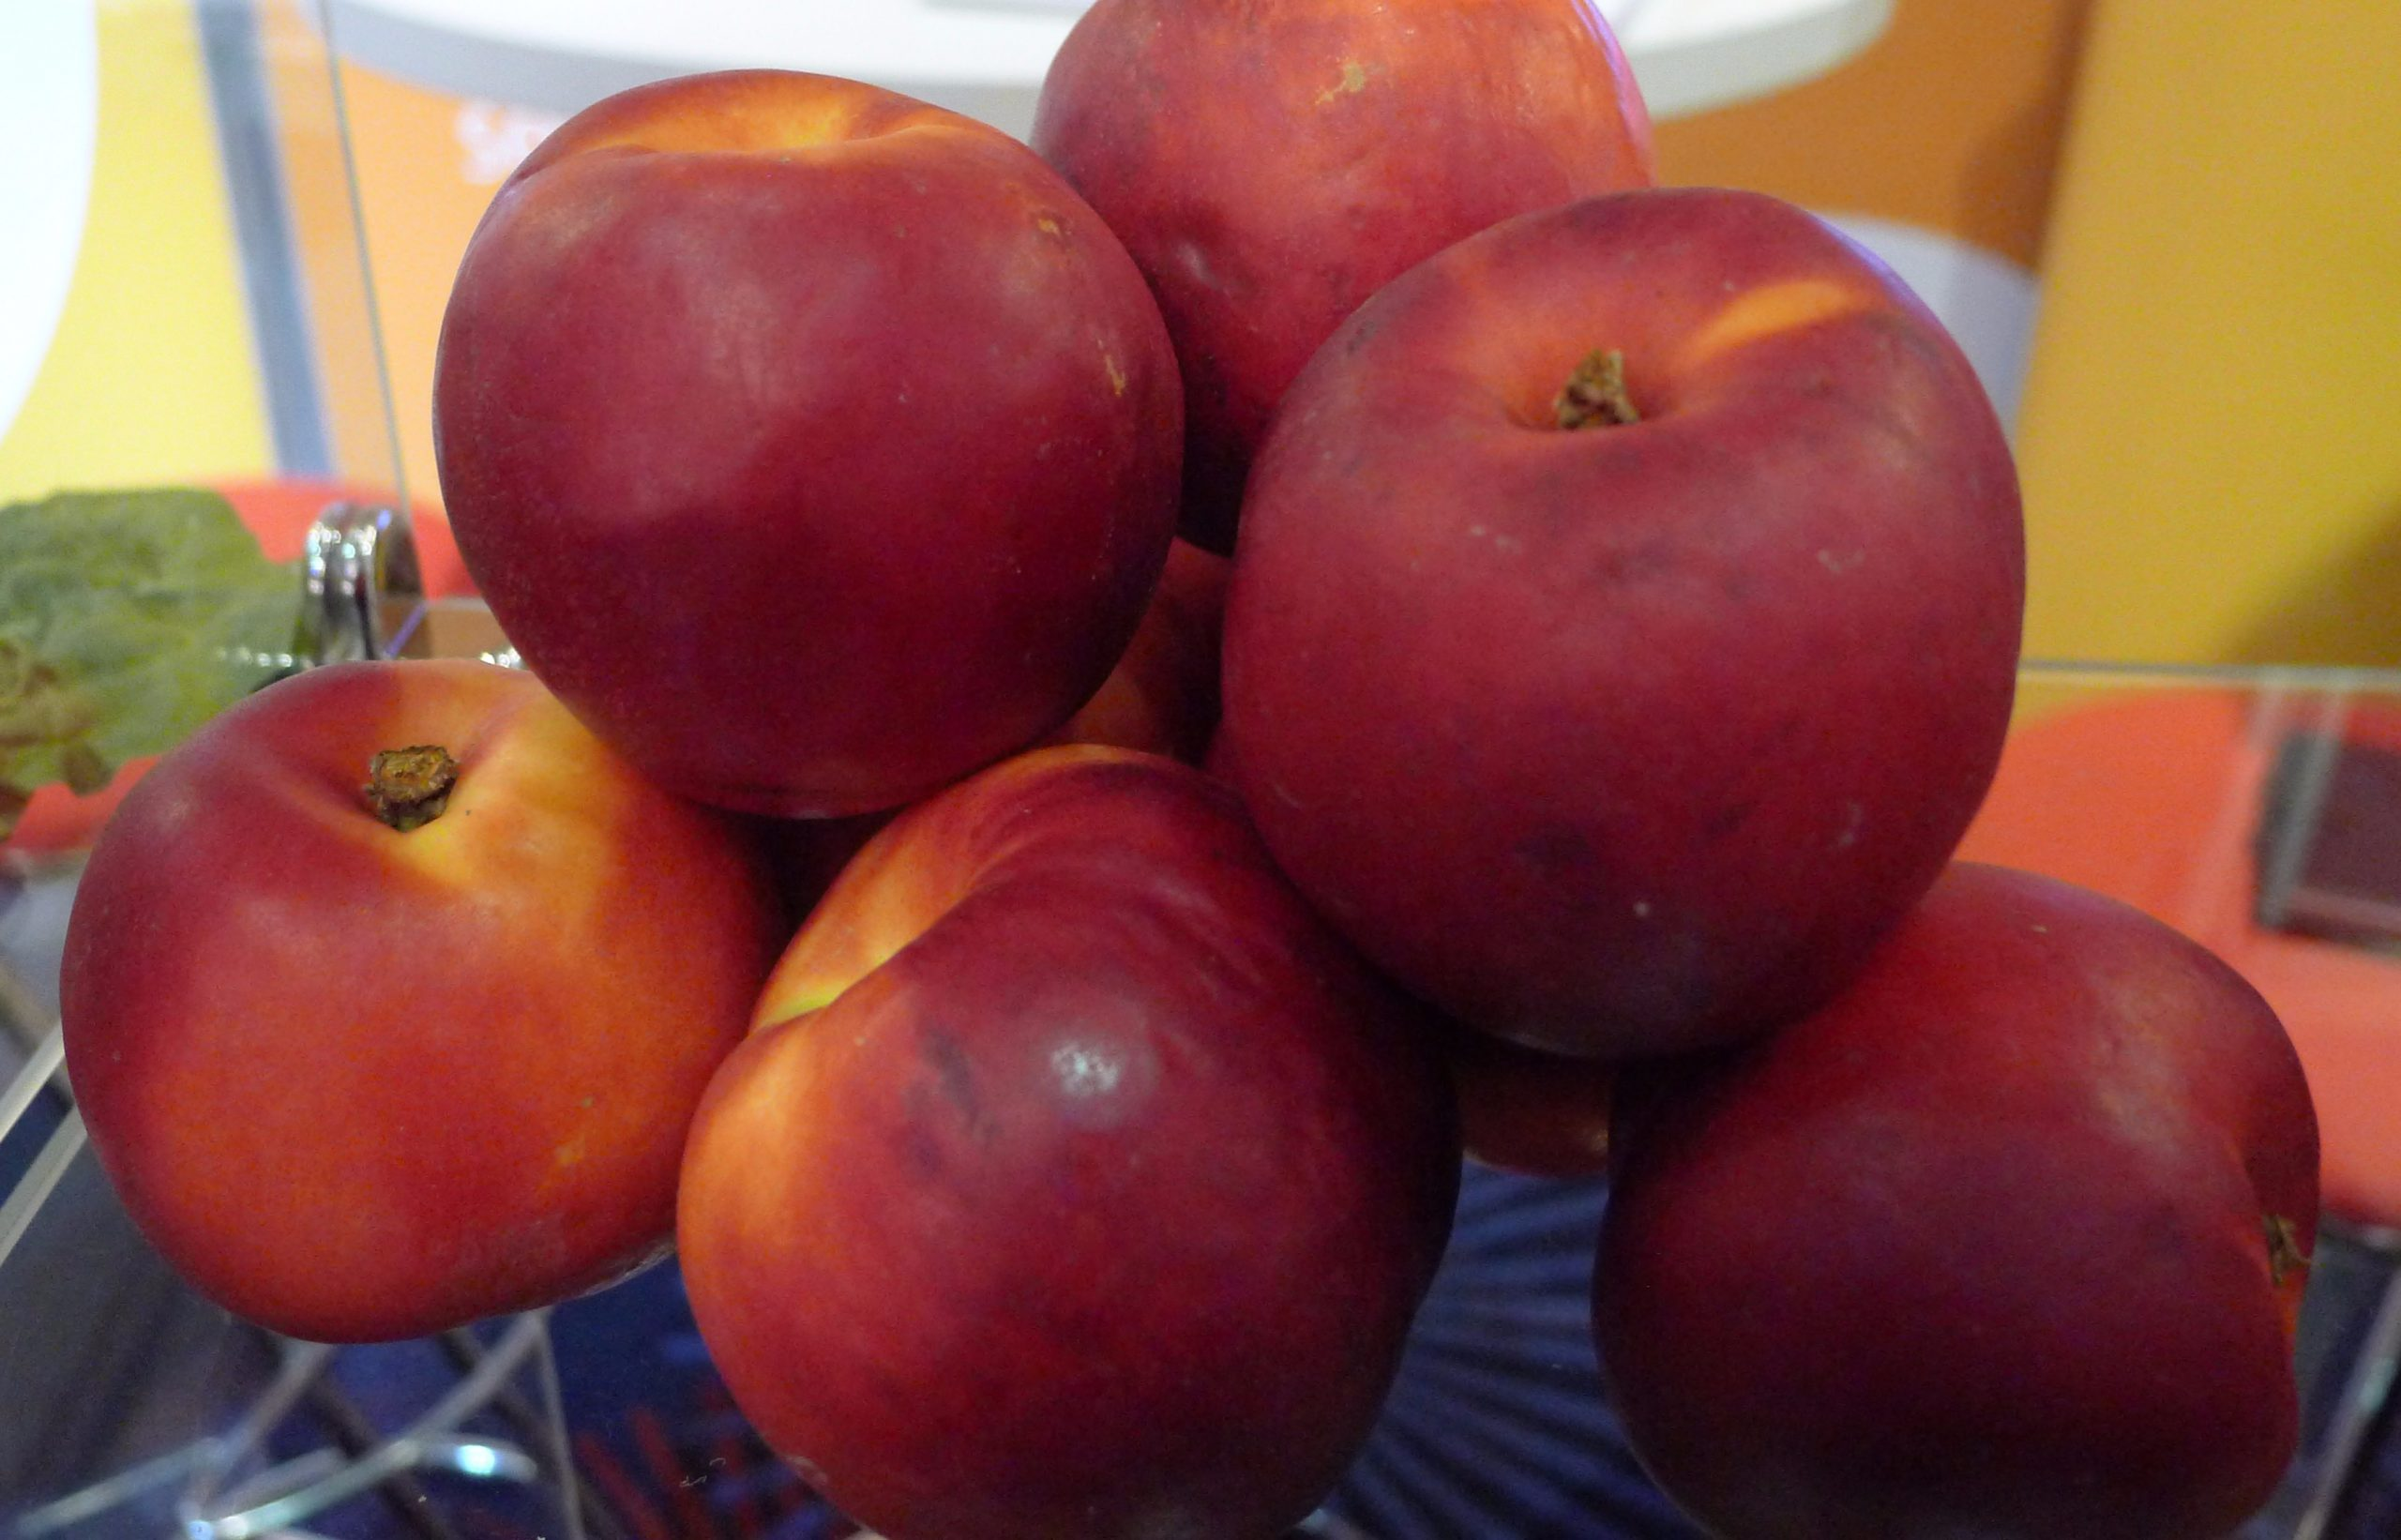 A 3.7% drop in EU peach and nectarine production – to 4 million tons – is forecast for 2015/16, while that for cherries is projected at 745,900 tons, remaining flat compared with last season, according to the USDA Foreign Agricultural Service (FAS).